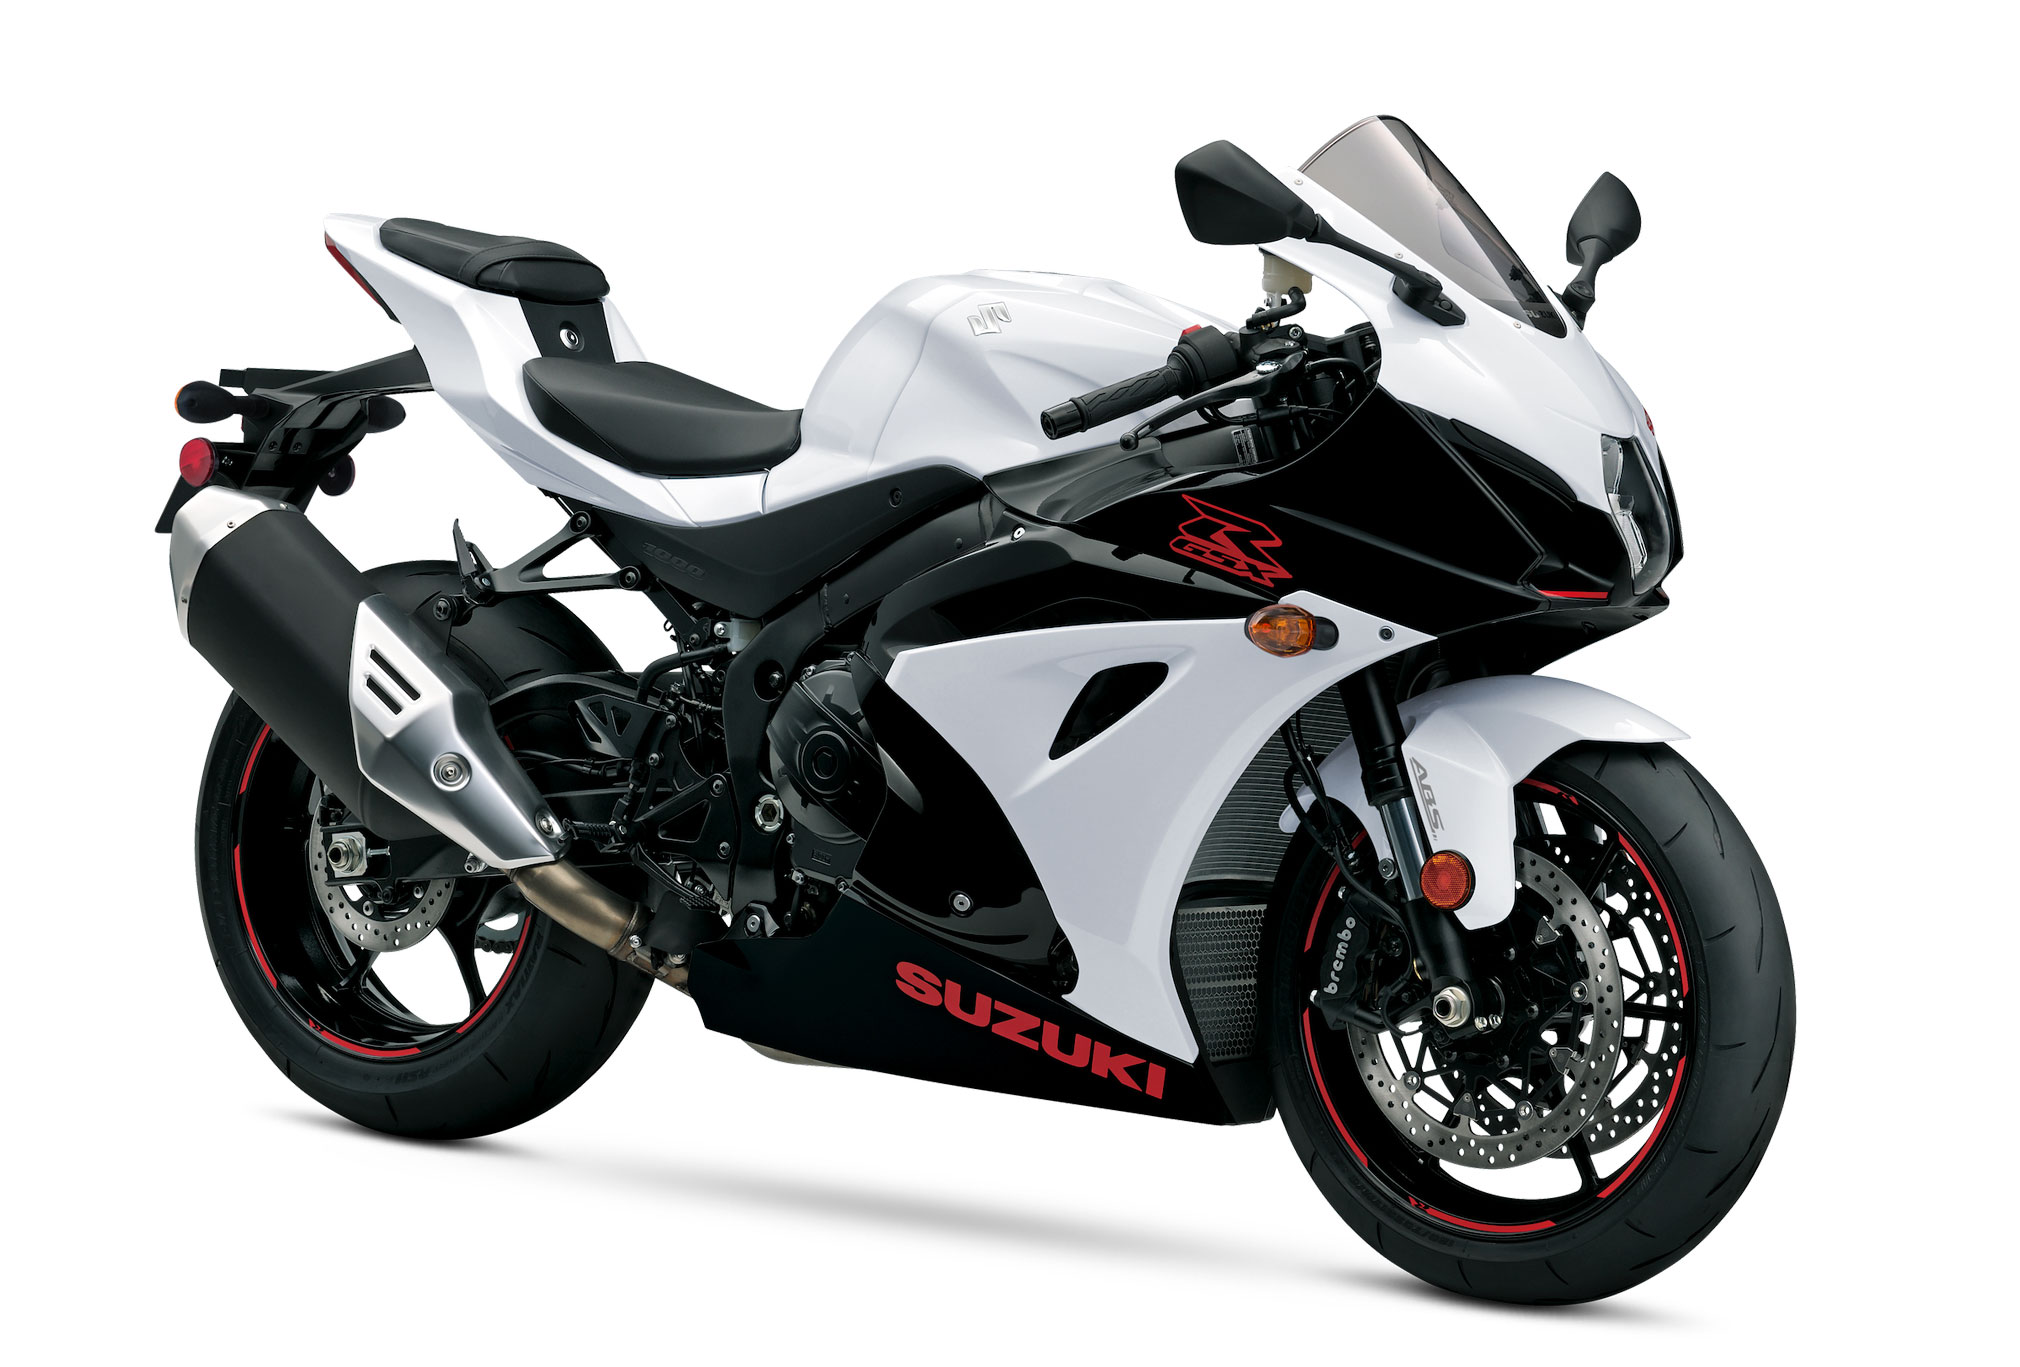 License Plate LED s GSXR 1000 Any Sport Bike Motorcycle